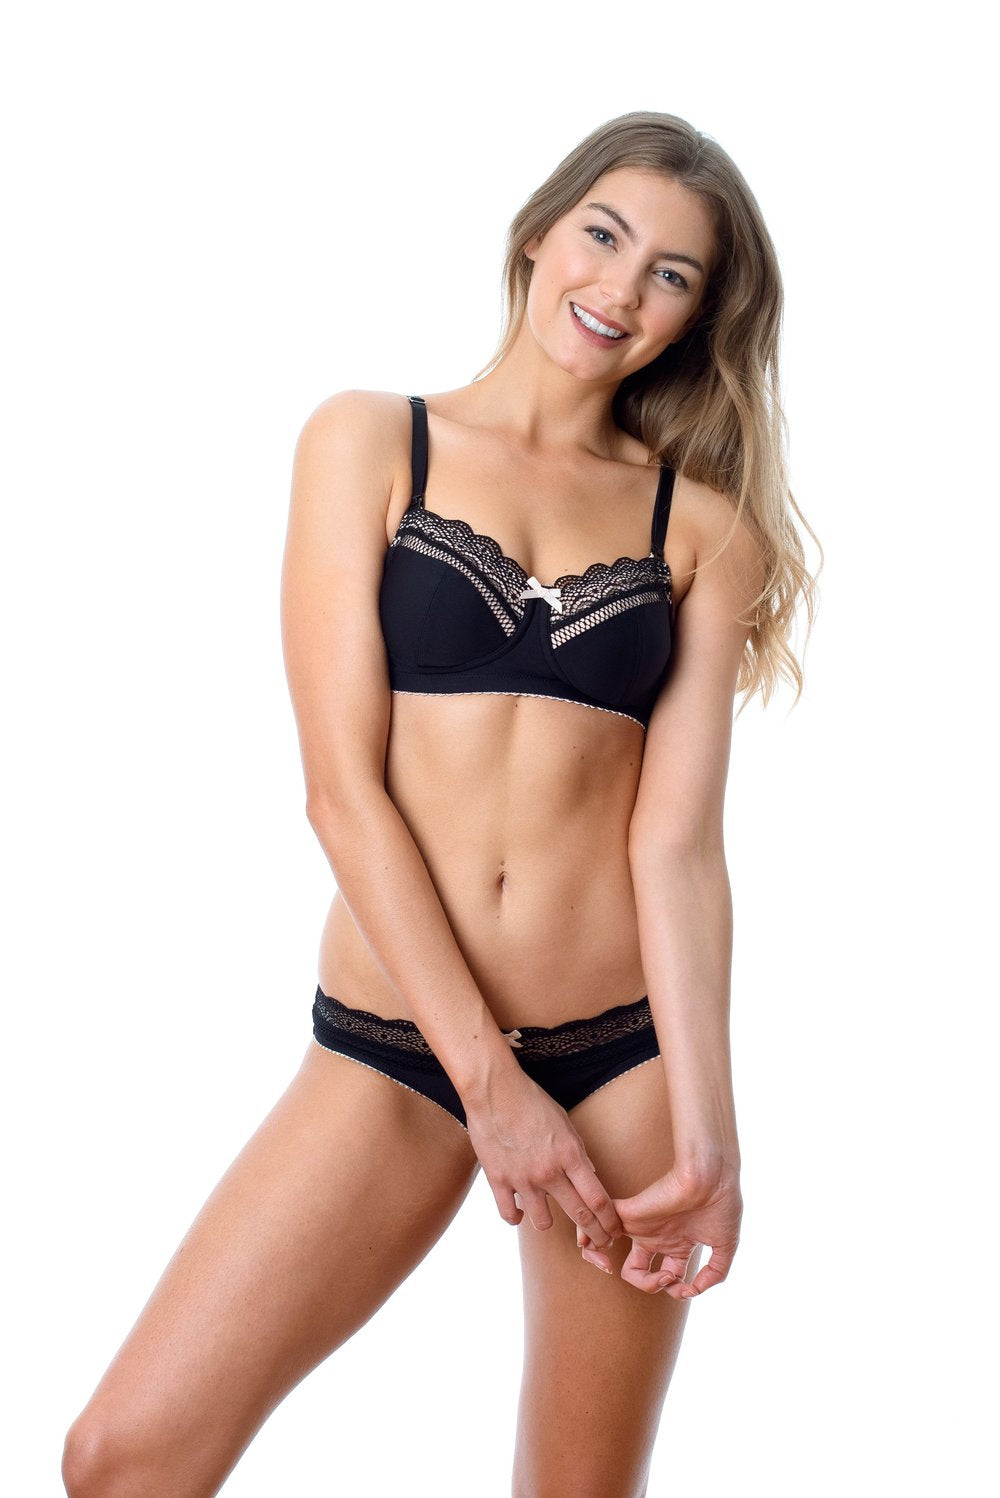 Hotmilk - Show off maternity / Nursing bra (JET BLACK )